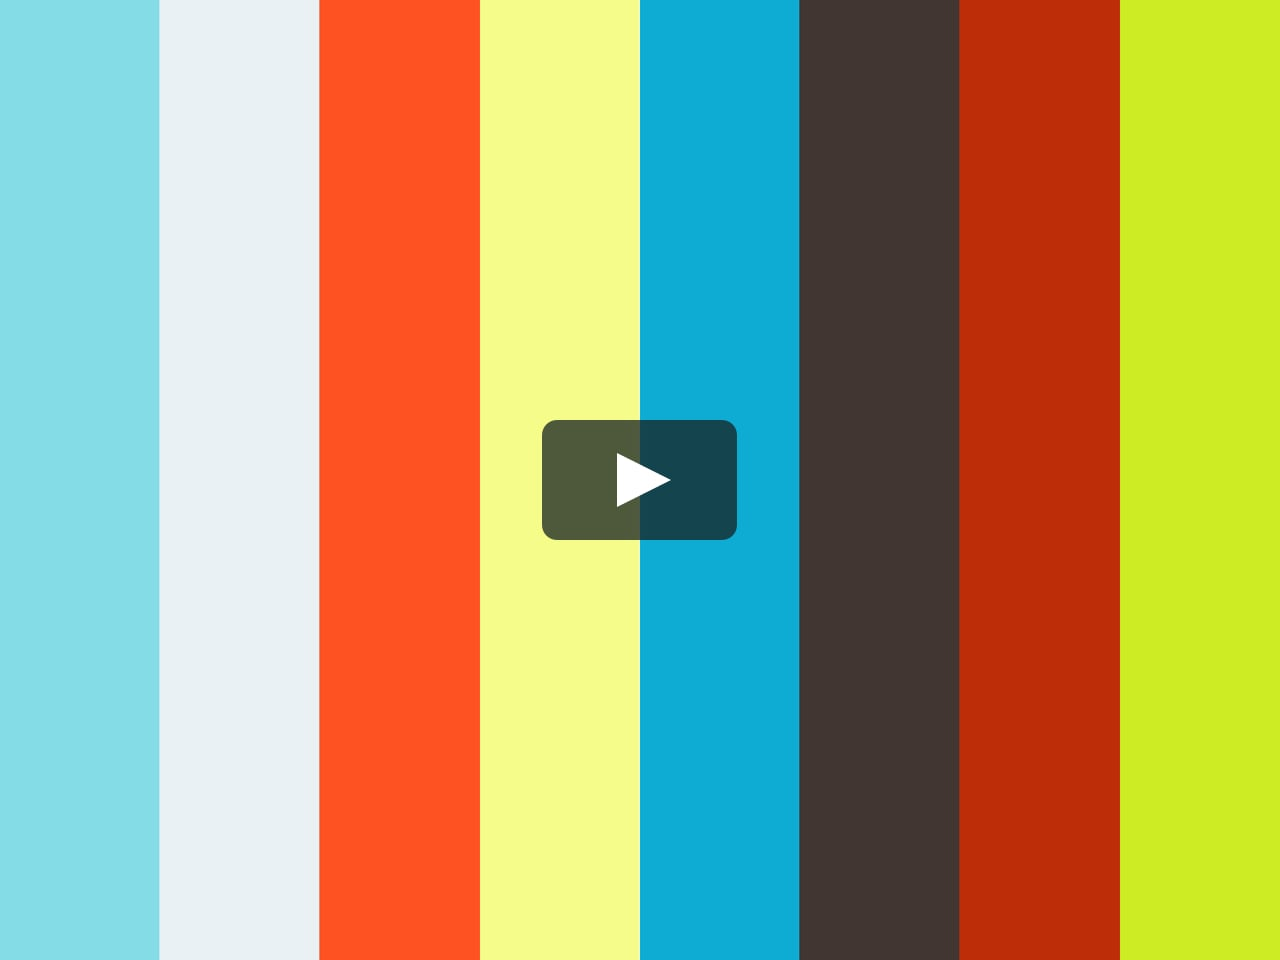 Video como instalar fibra piscinas cano c 61 on vimeo for Instalacion piscina poliester